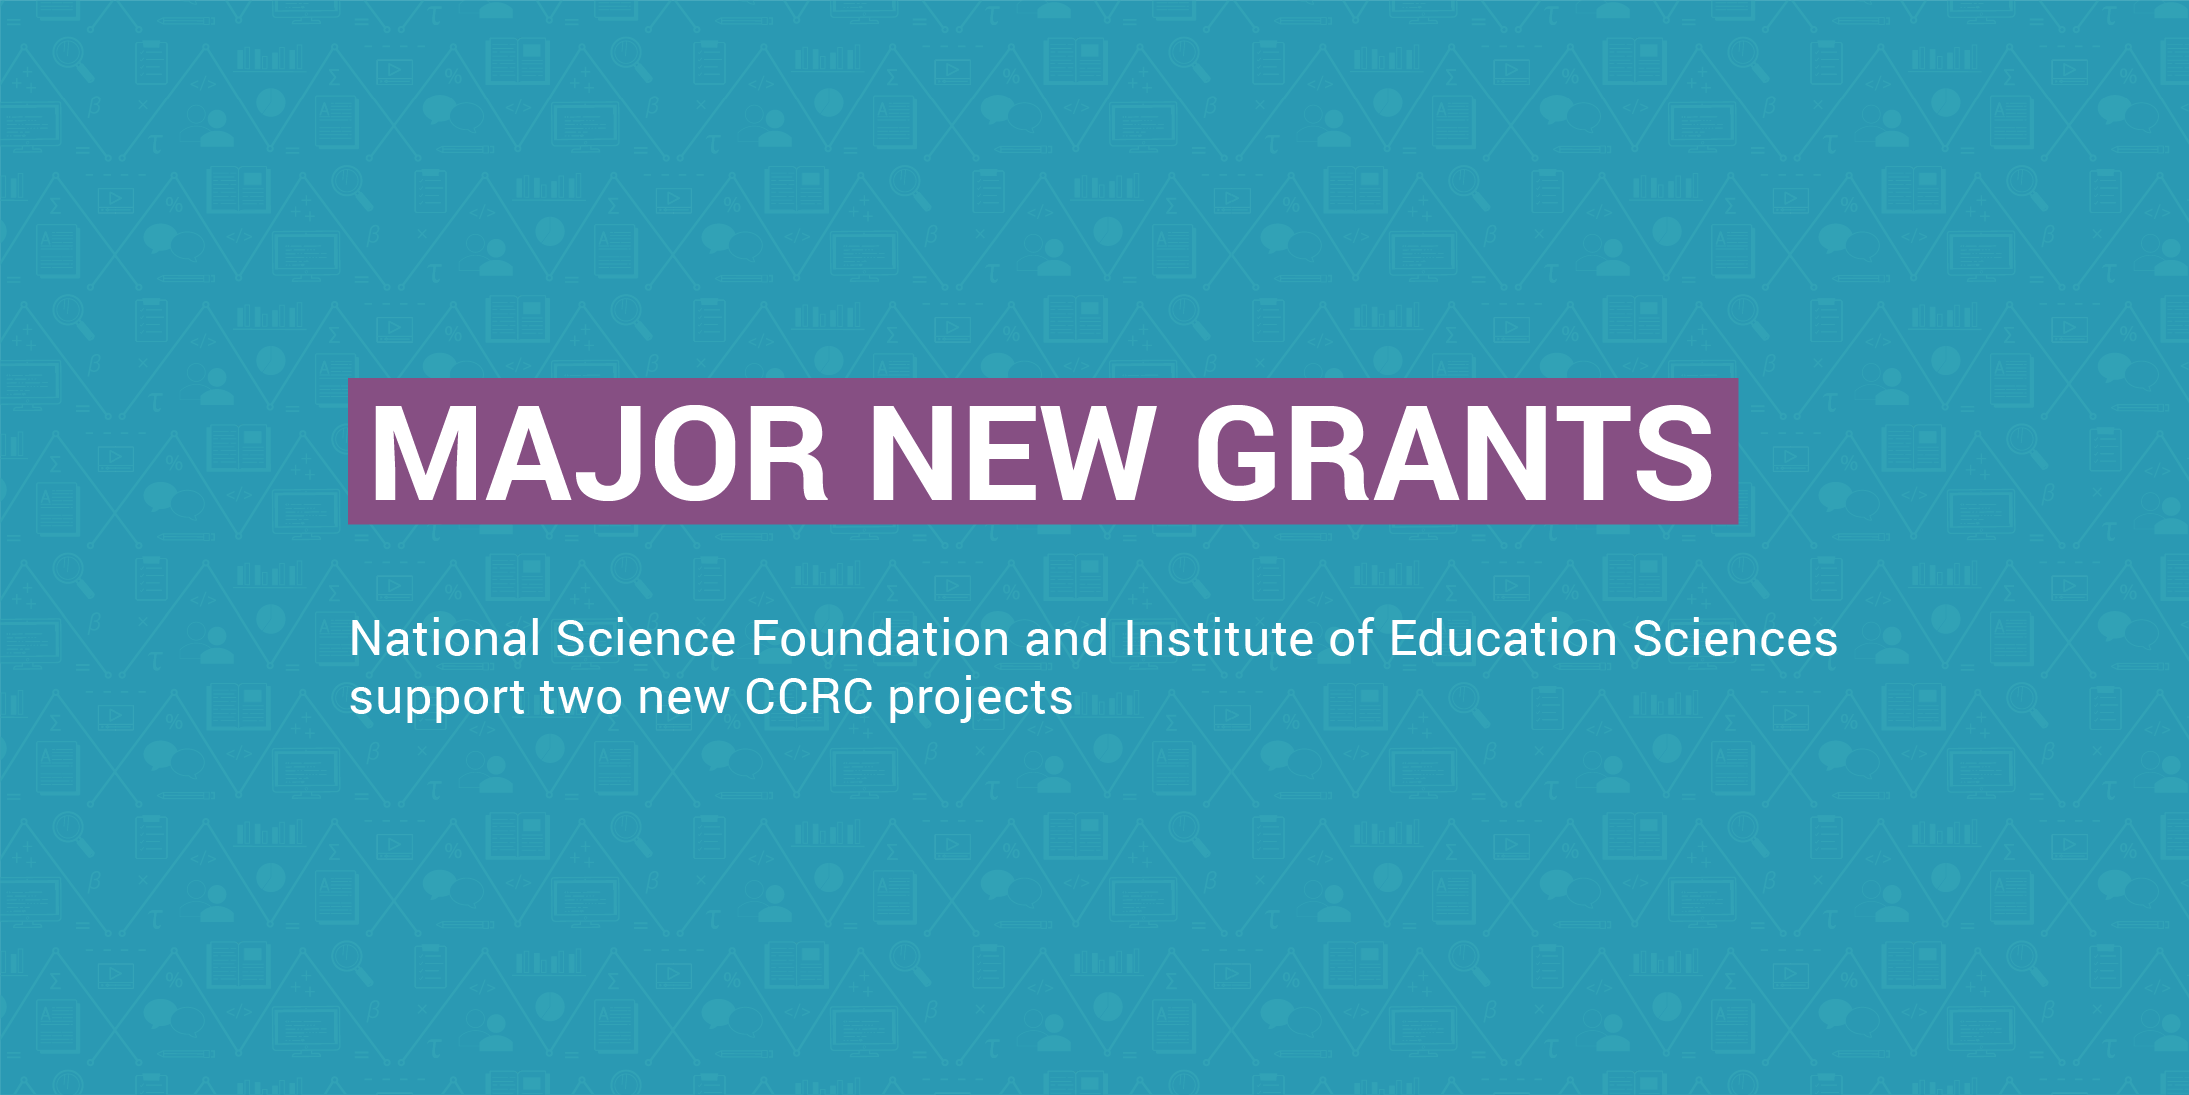 Major new grants: National Science Foundation and Institute of Education Sciences support two new CCRC projects